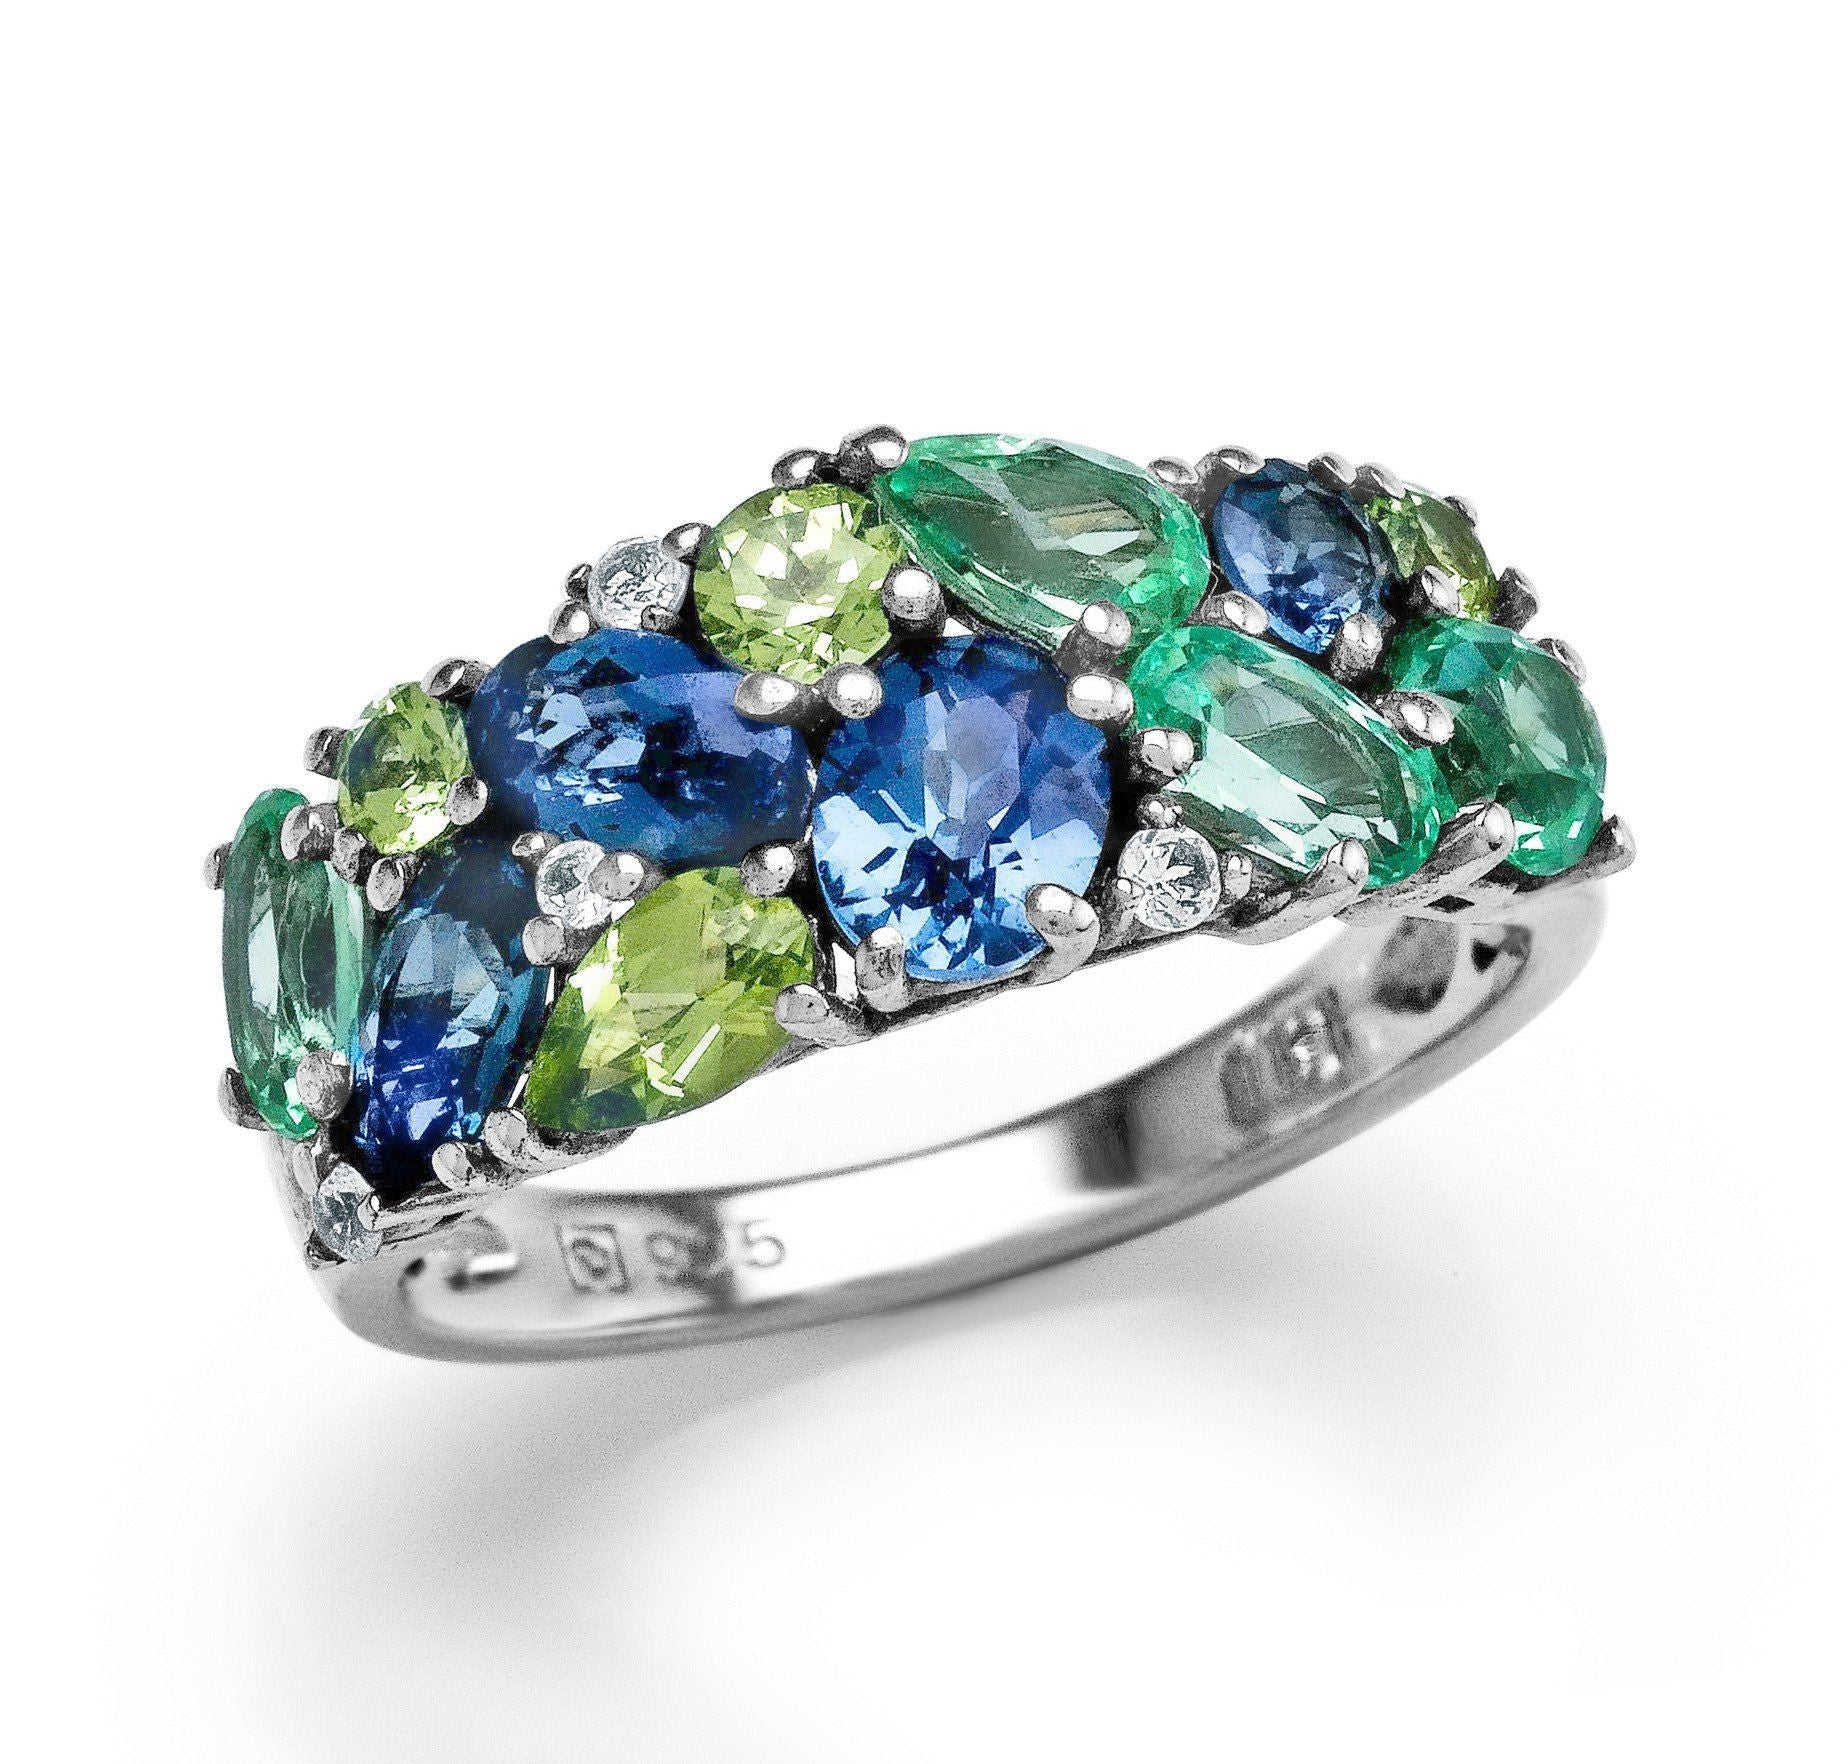 2.35 Carat Multi-Color Gemstone Ring in Sterling Silver